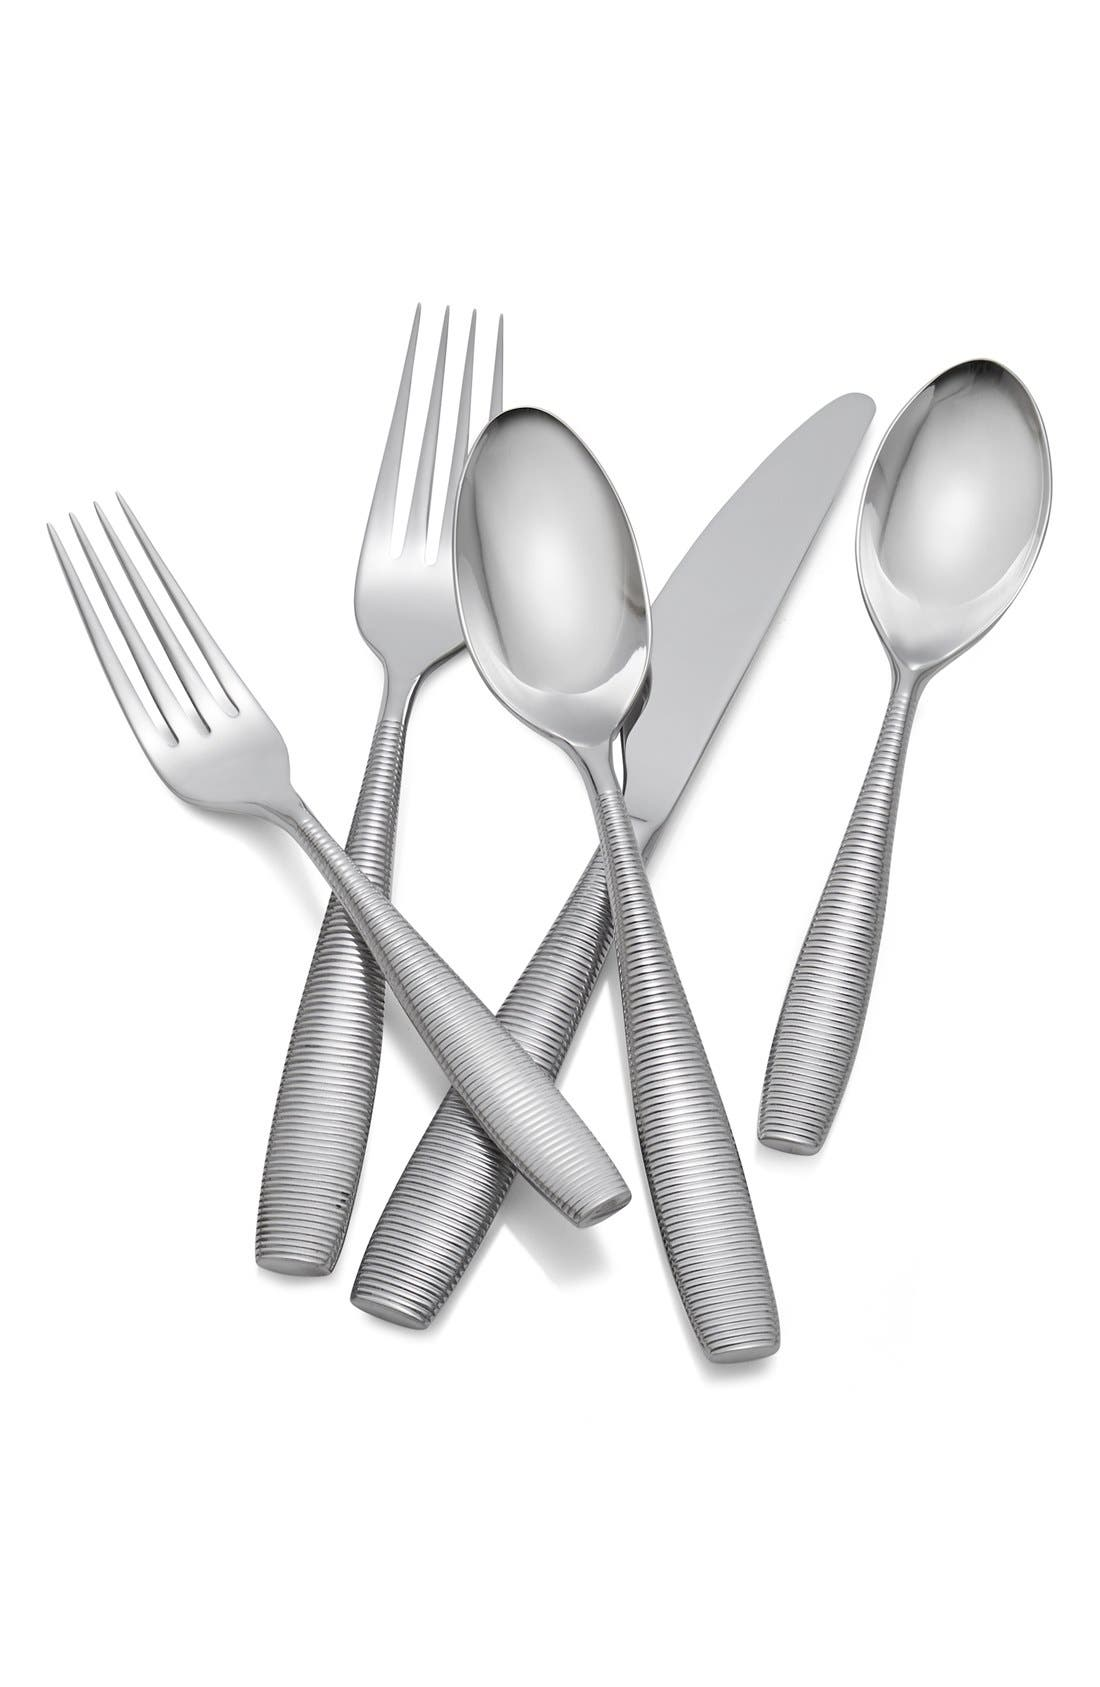 'Fiona' 5-Piece Stainless Steel Place Setting,                         Main,                         color, 040